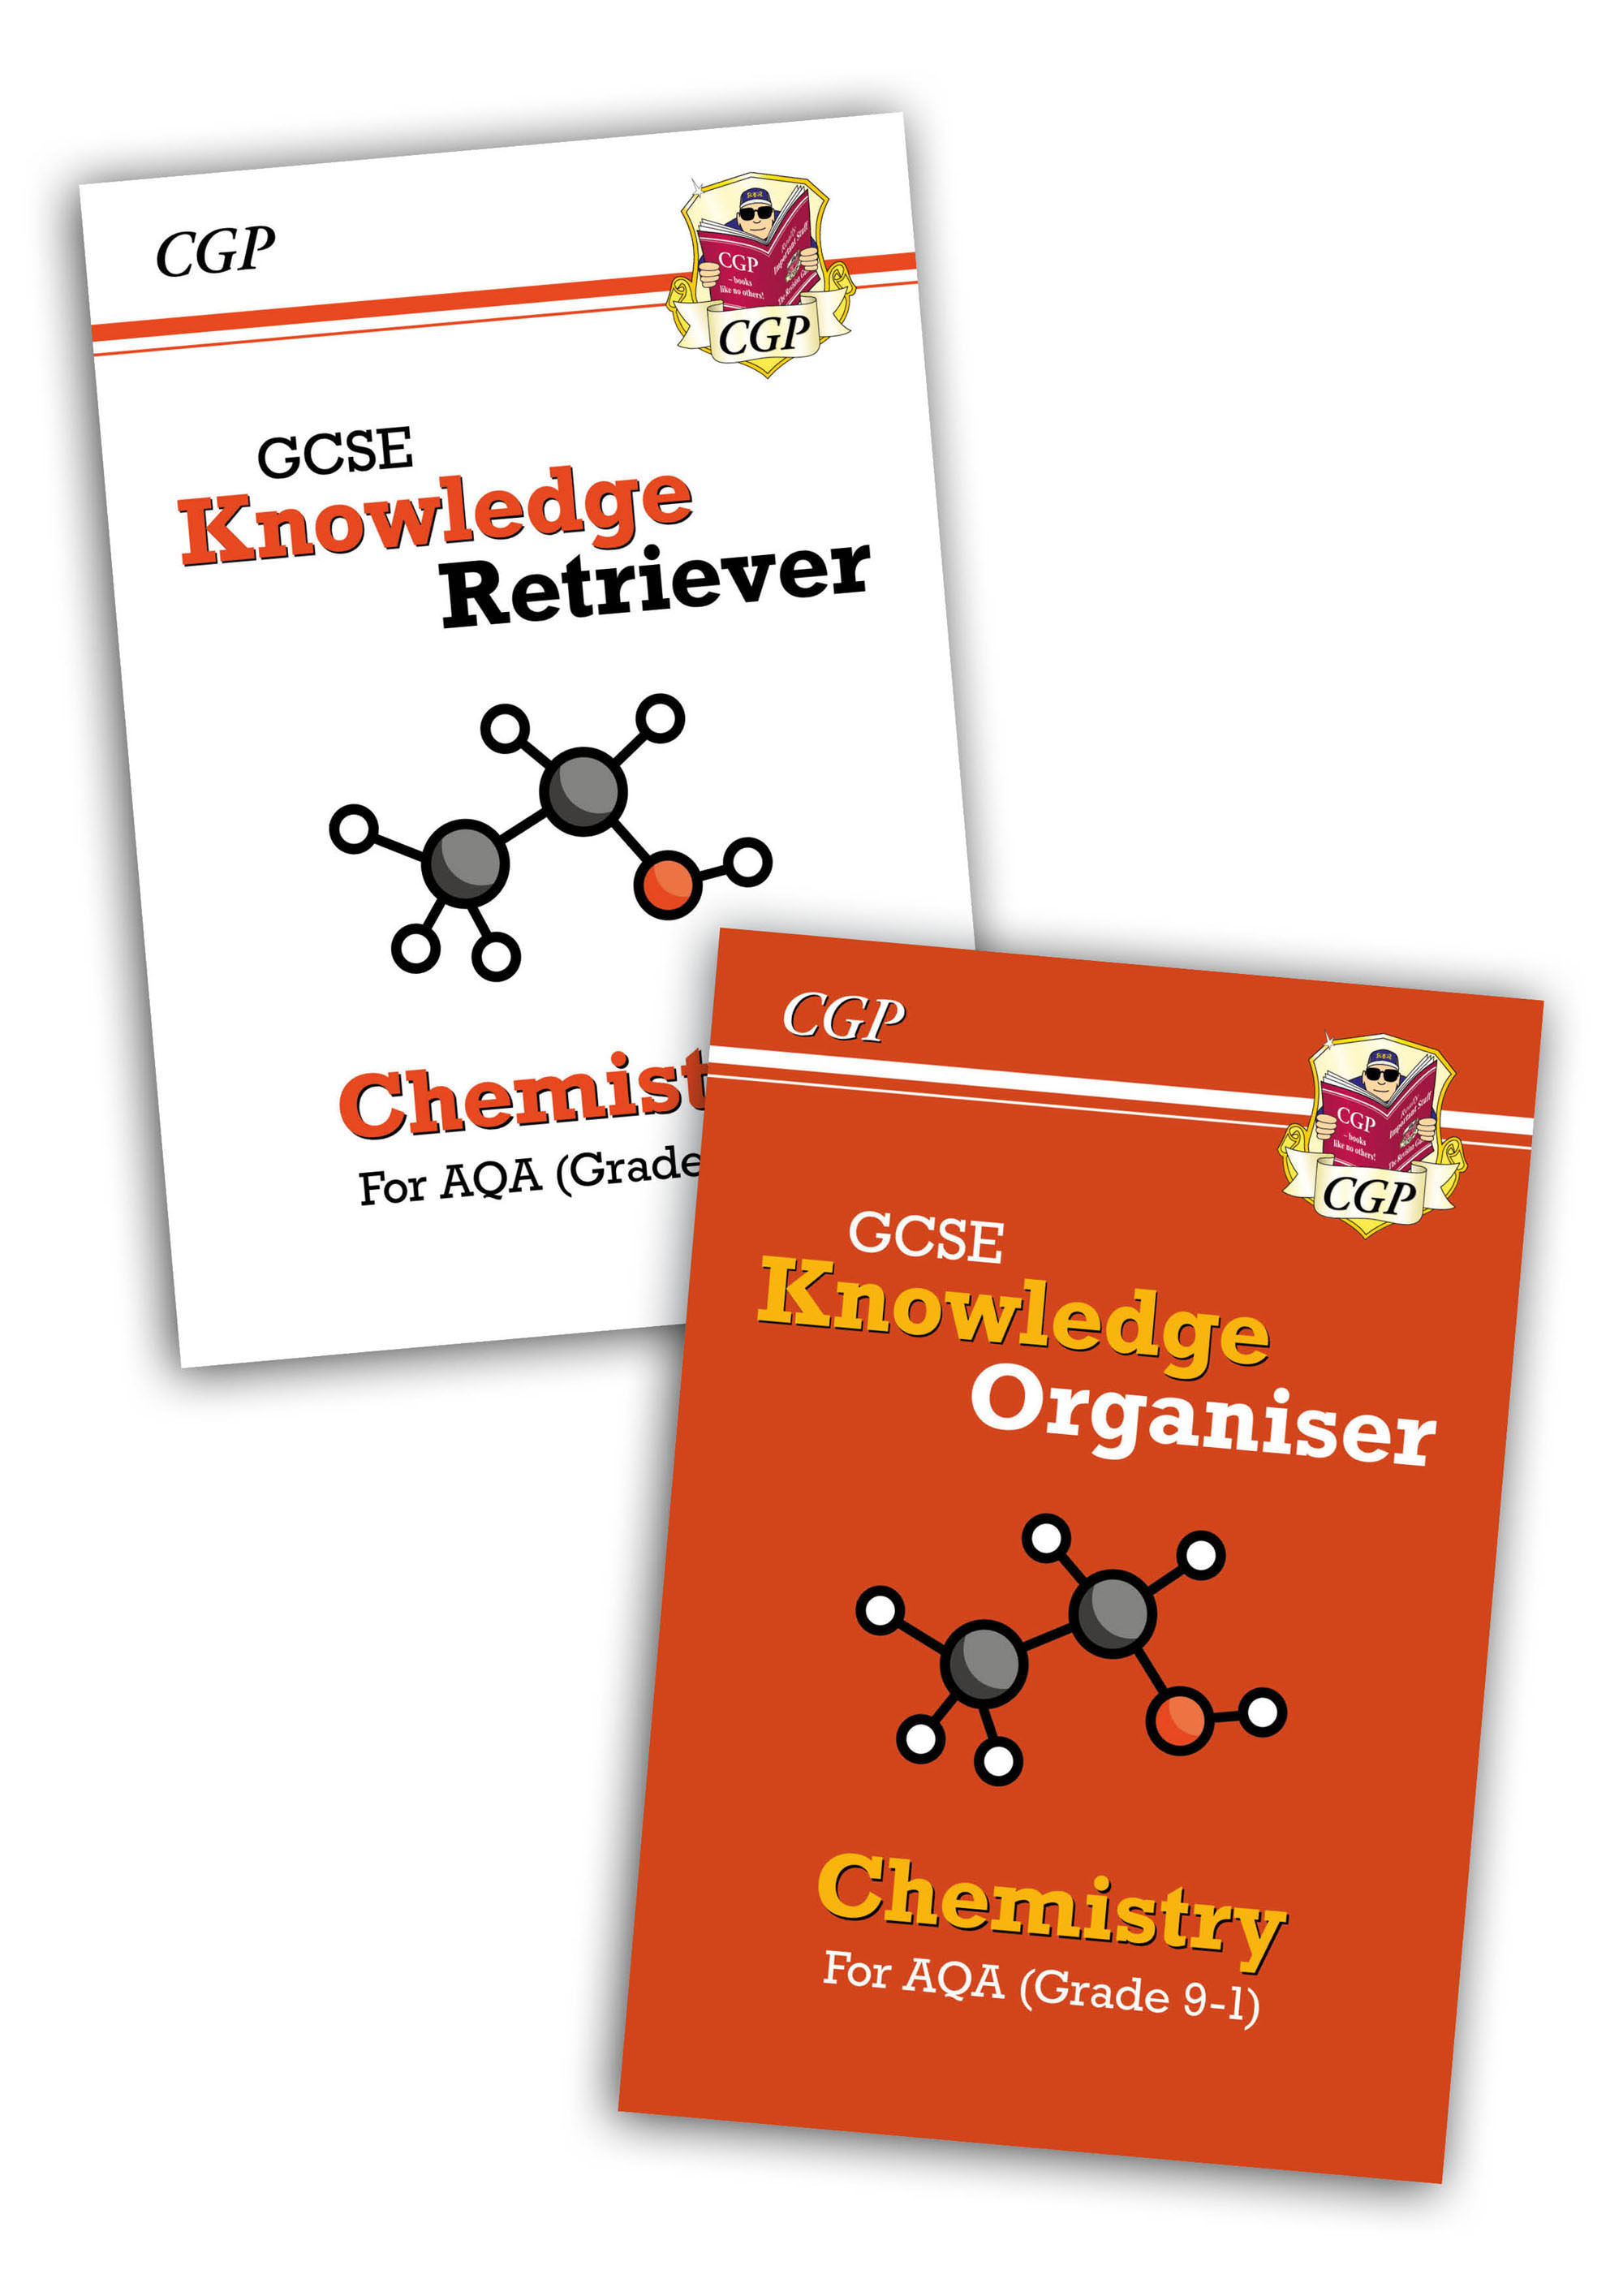 CAKBB41 - New GCSE Knowledge Organiser & Retriever Bundle: AQA Chemistry (Grade 9-1)